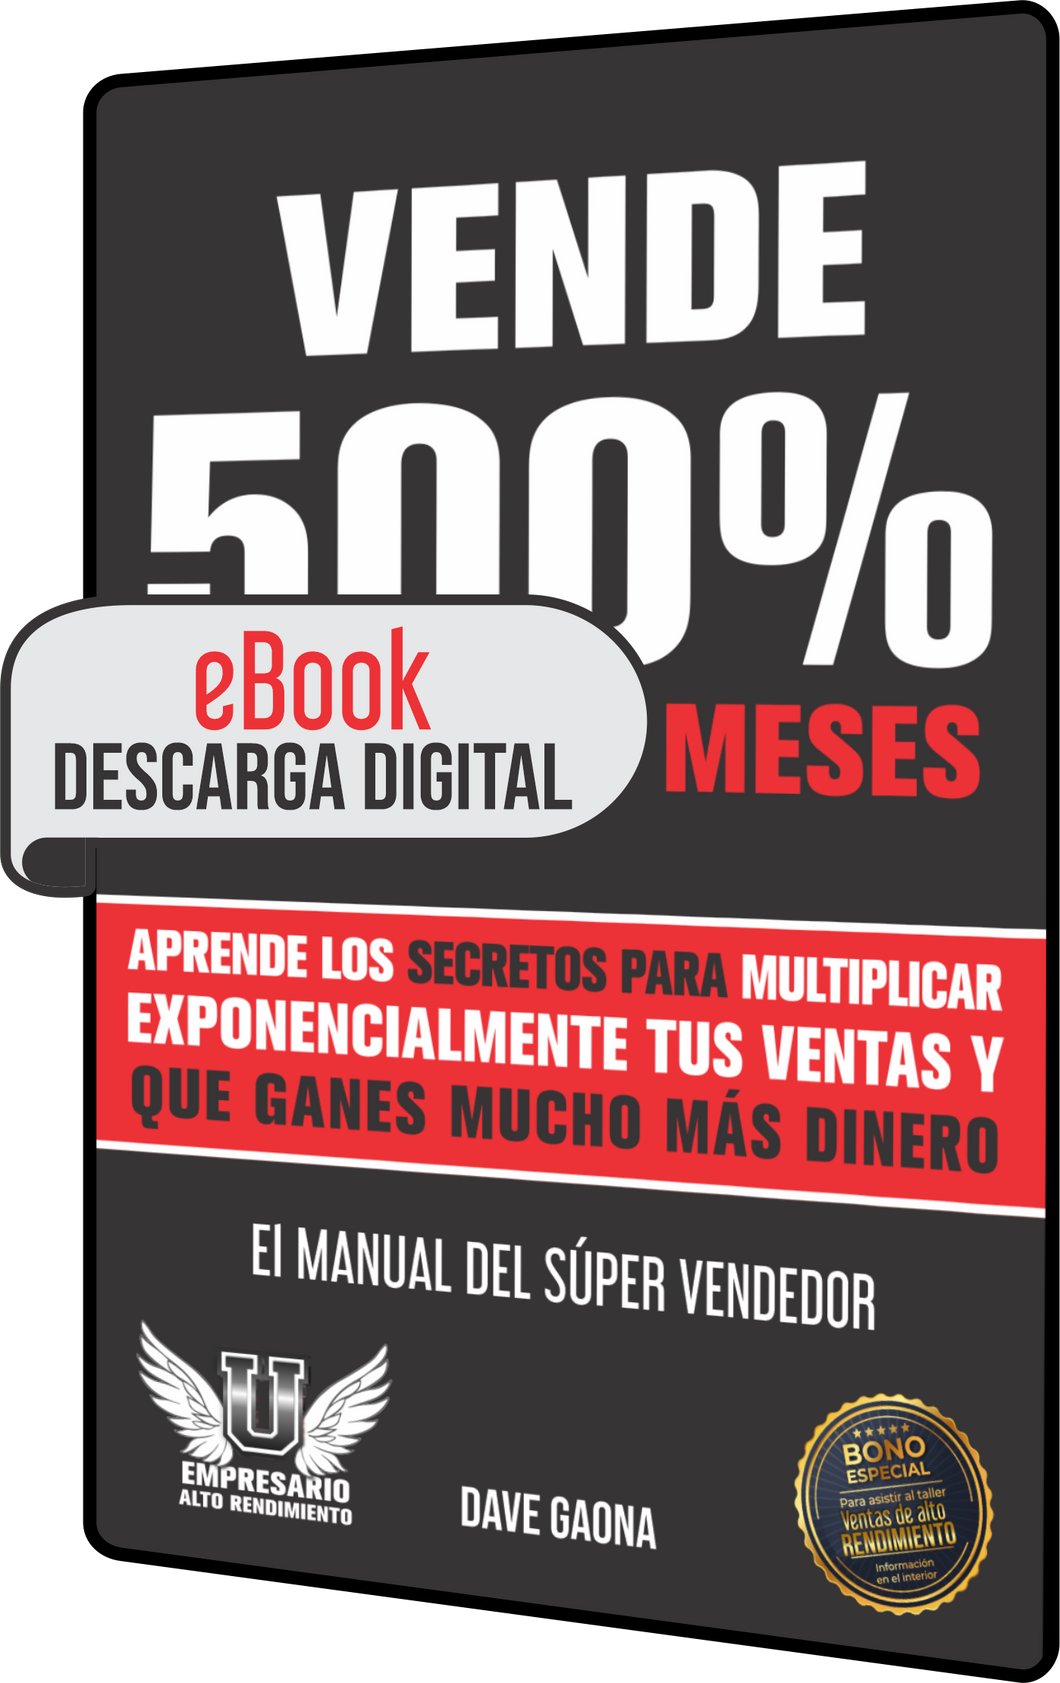 eBook - Vende 500% más en 6 meses (Manual $úper Vendedor) Descarga